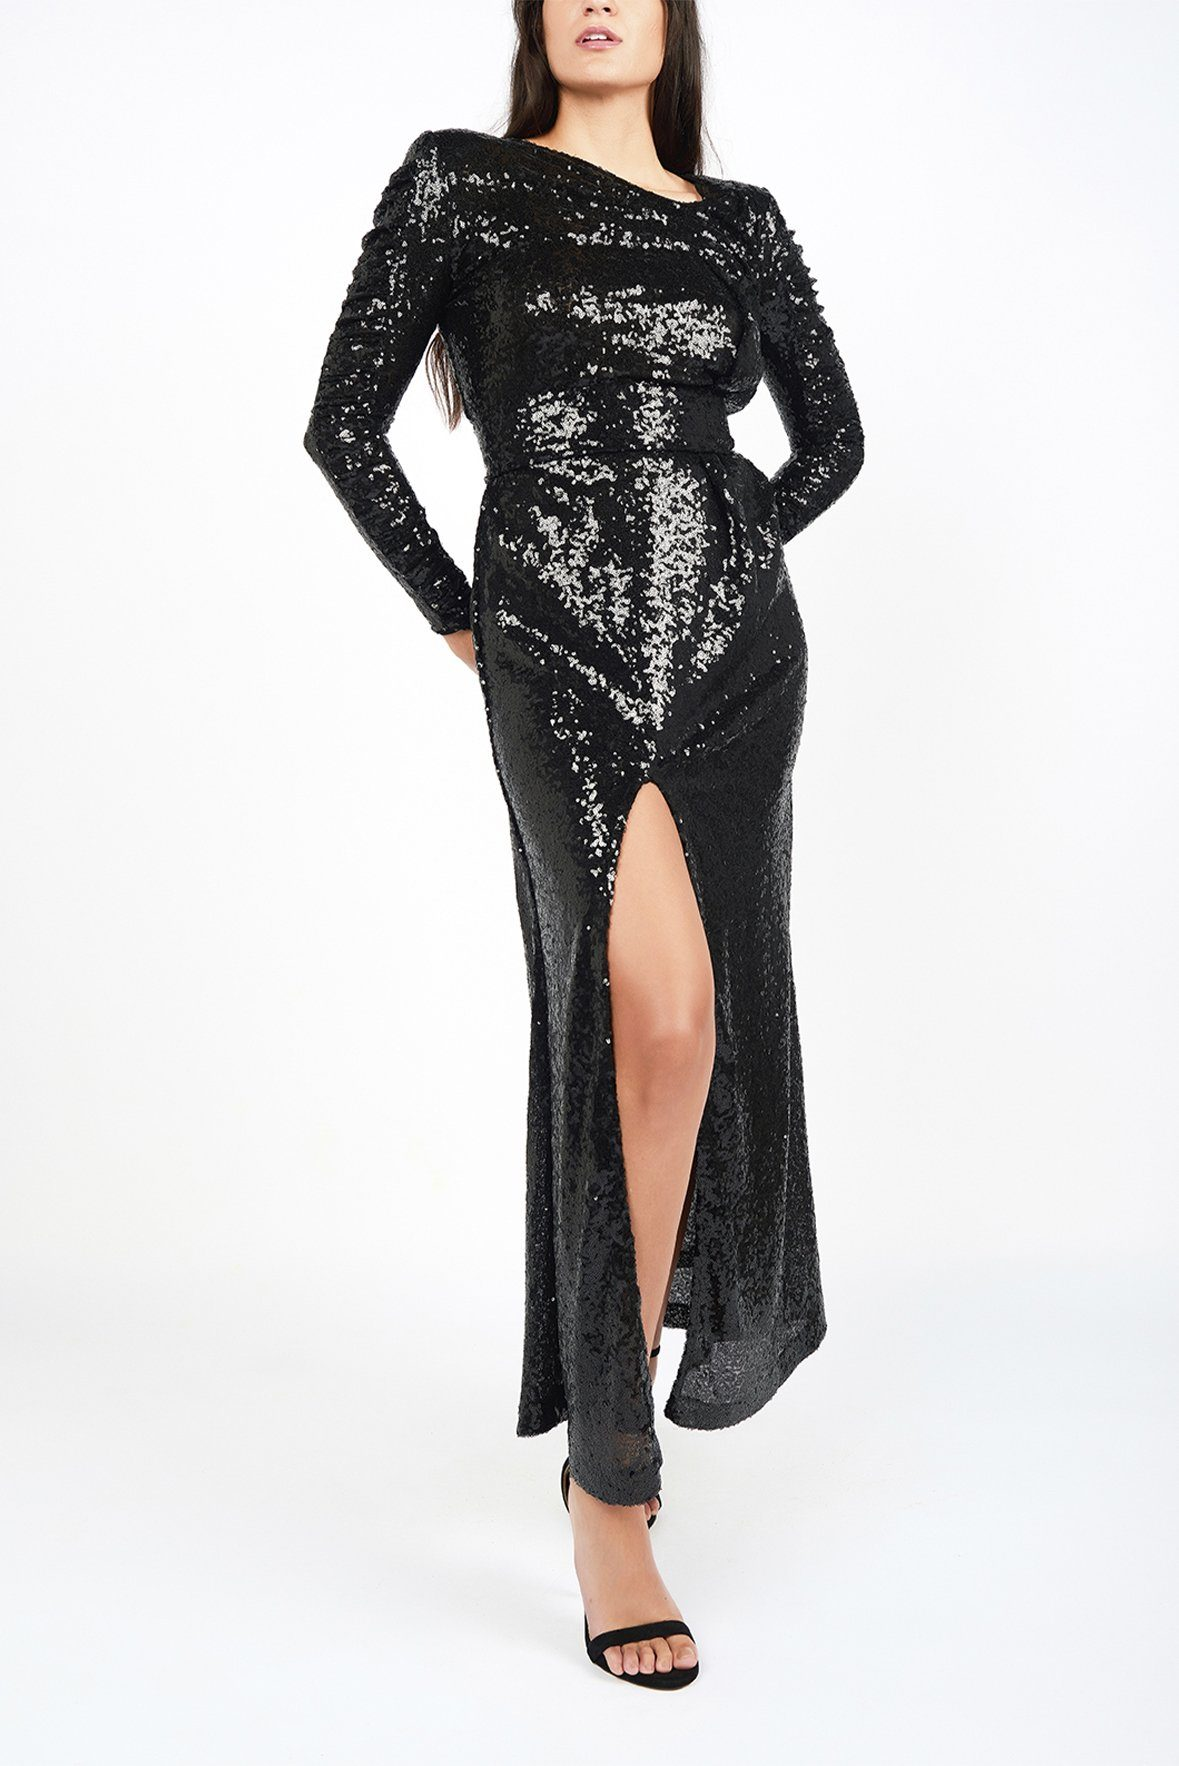 Maureen Black Sequin Gown - Maer World